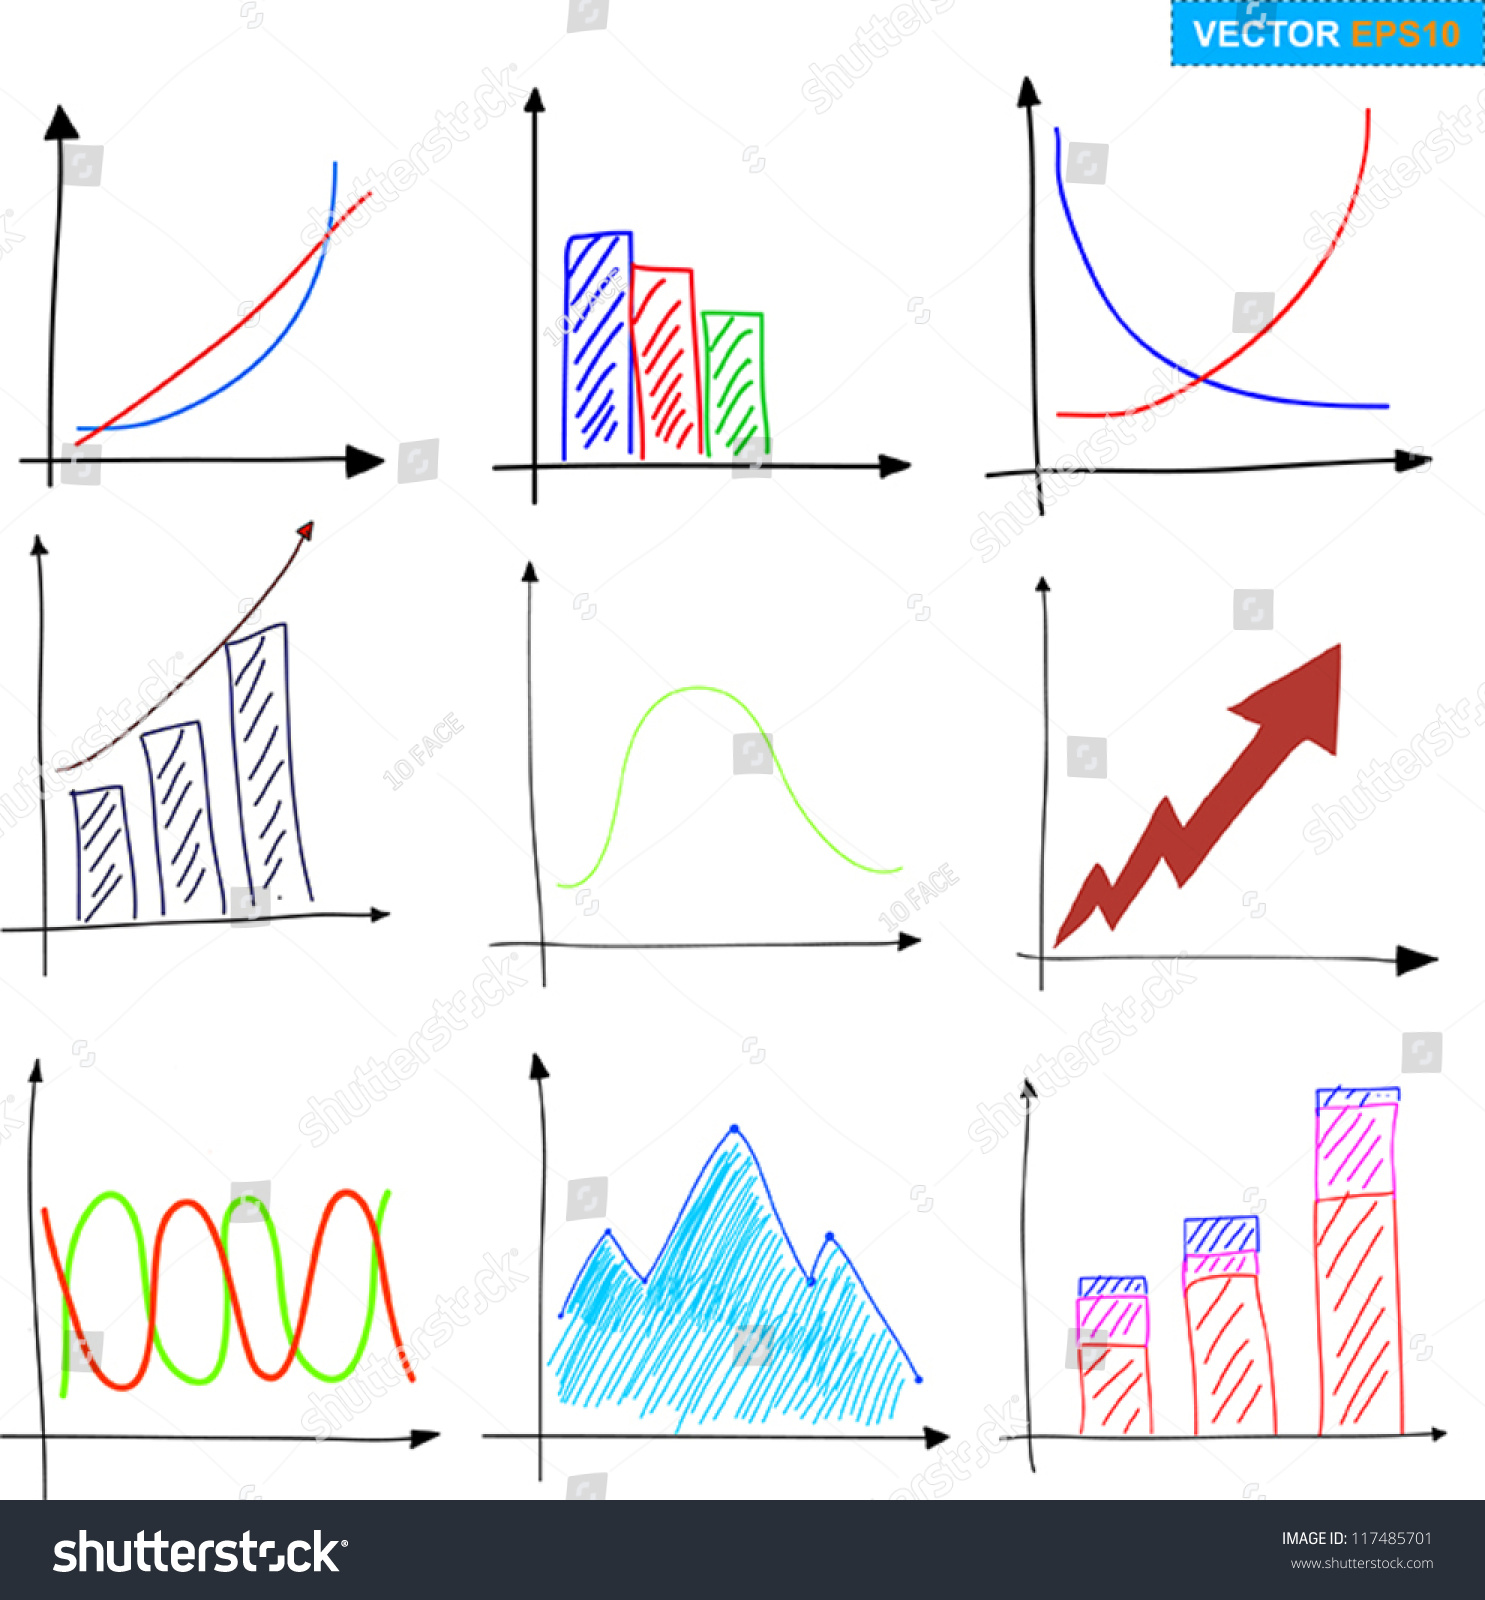 Drawing Line Graphs By Hand : Drawing graph stock vector shutterstock